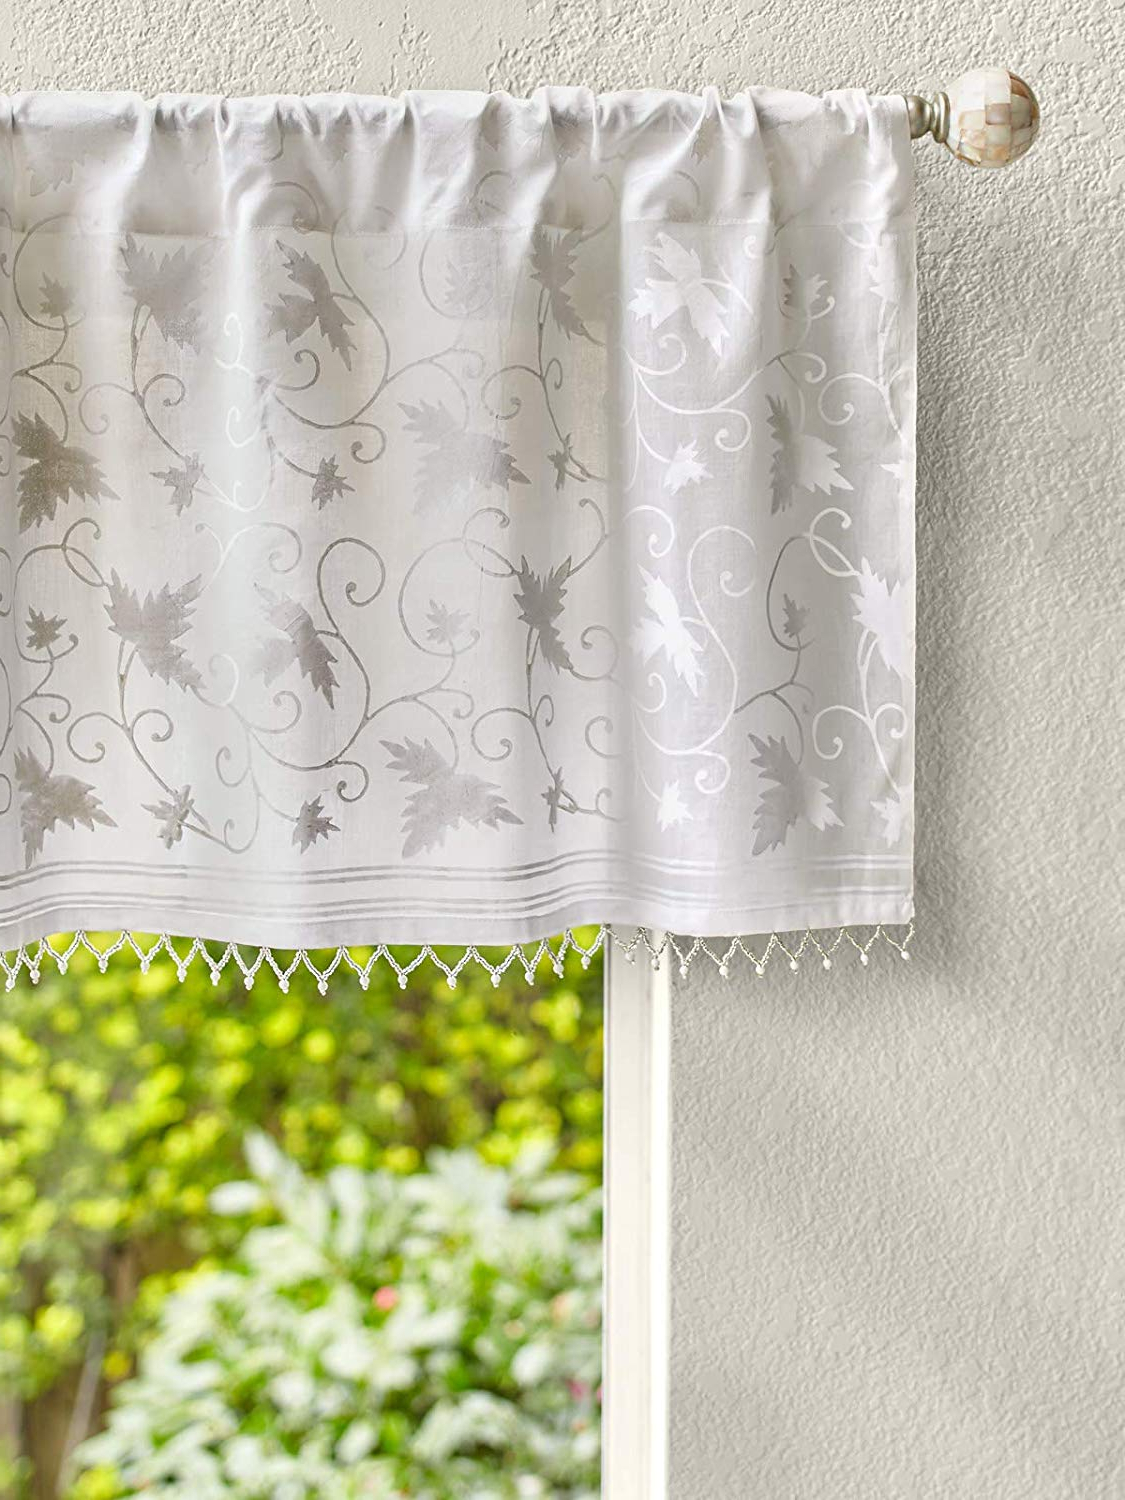 Favorite Saffron Marigold – Ivy Lace – White On White Country Cottage Floral Hand  Printed – Beaded Sheer Cotton Voile Window Valance Curtain – Rod Pocket – Regarding Cottage Ivy Curtain Tiers (View 15 of 20)